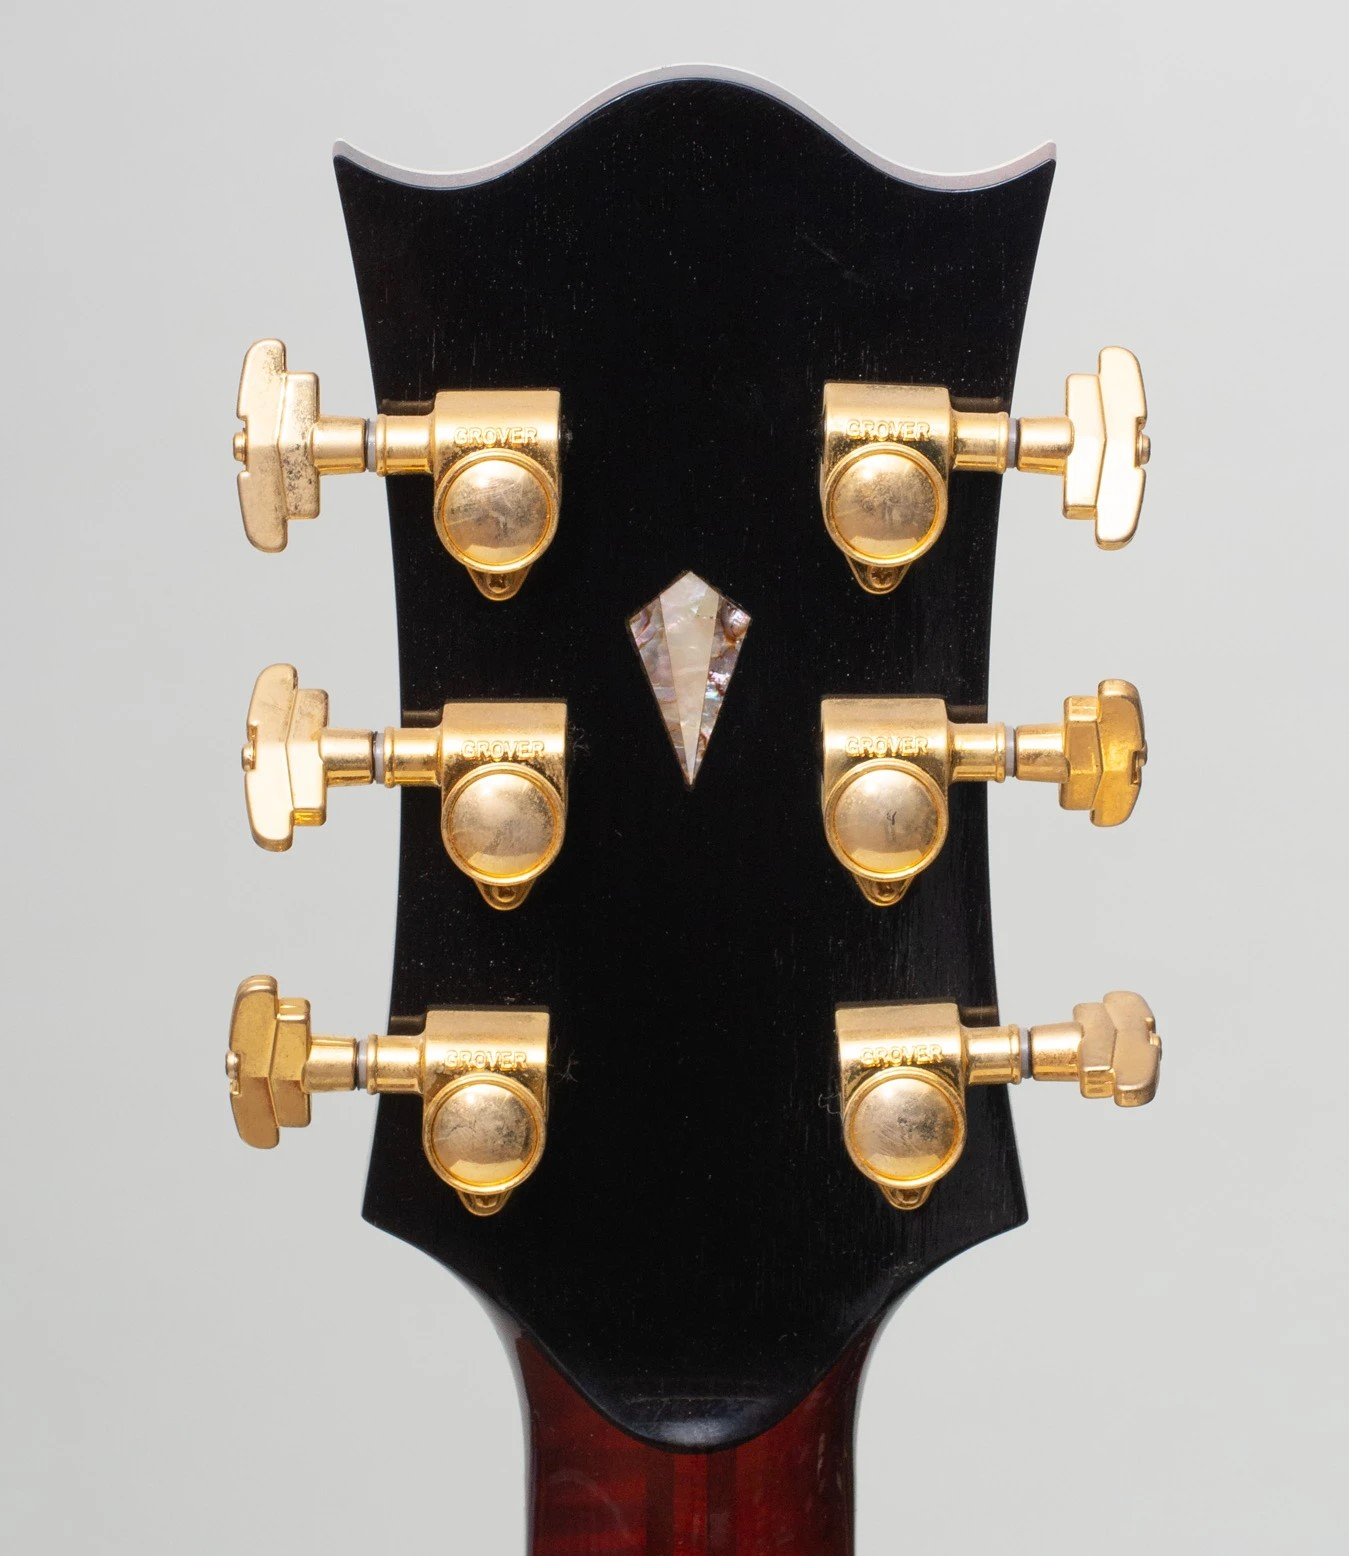 Campellone Choice - New Standard or Used Special?-campellone-special-headstock-r-2-jpg